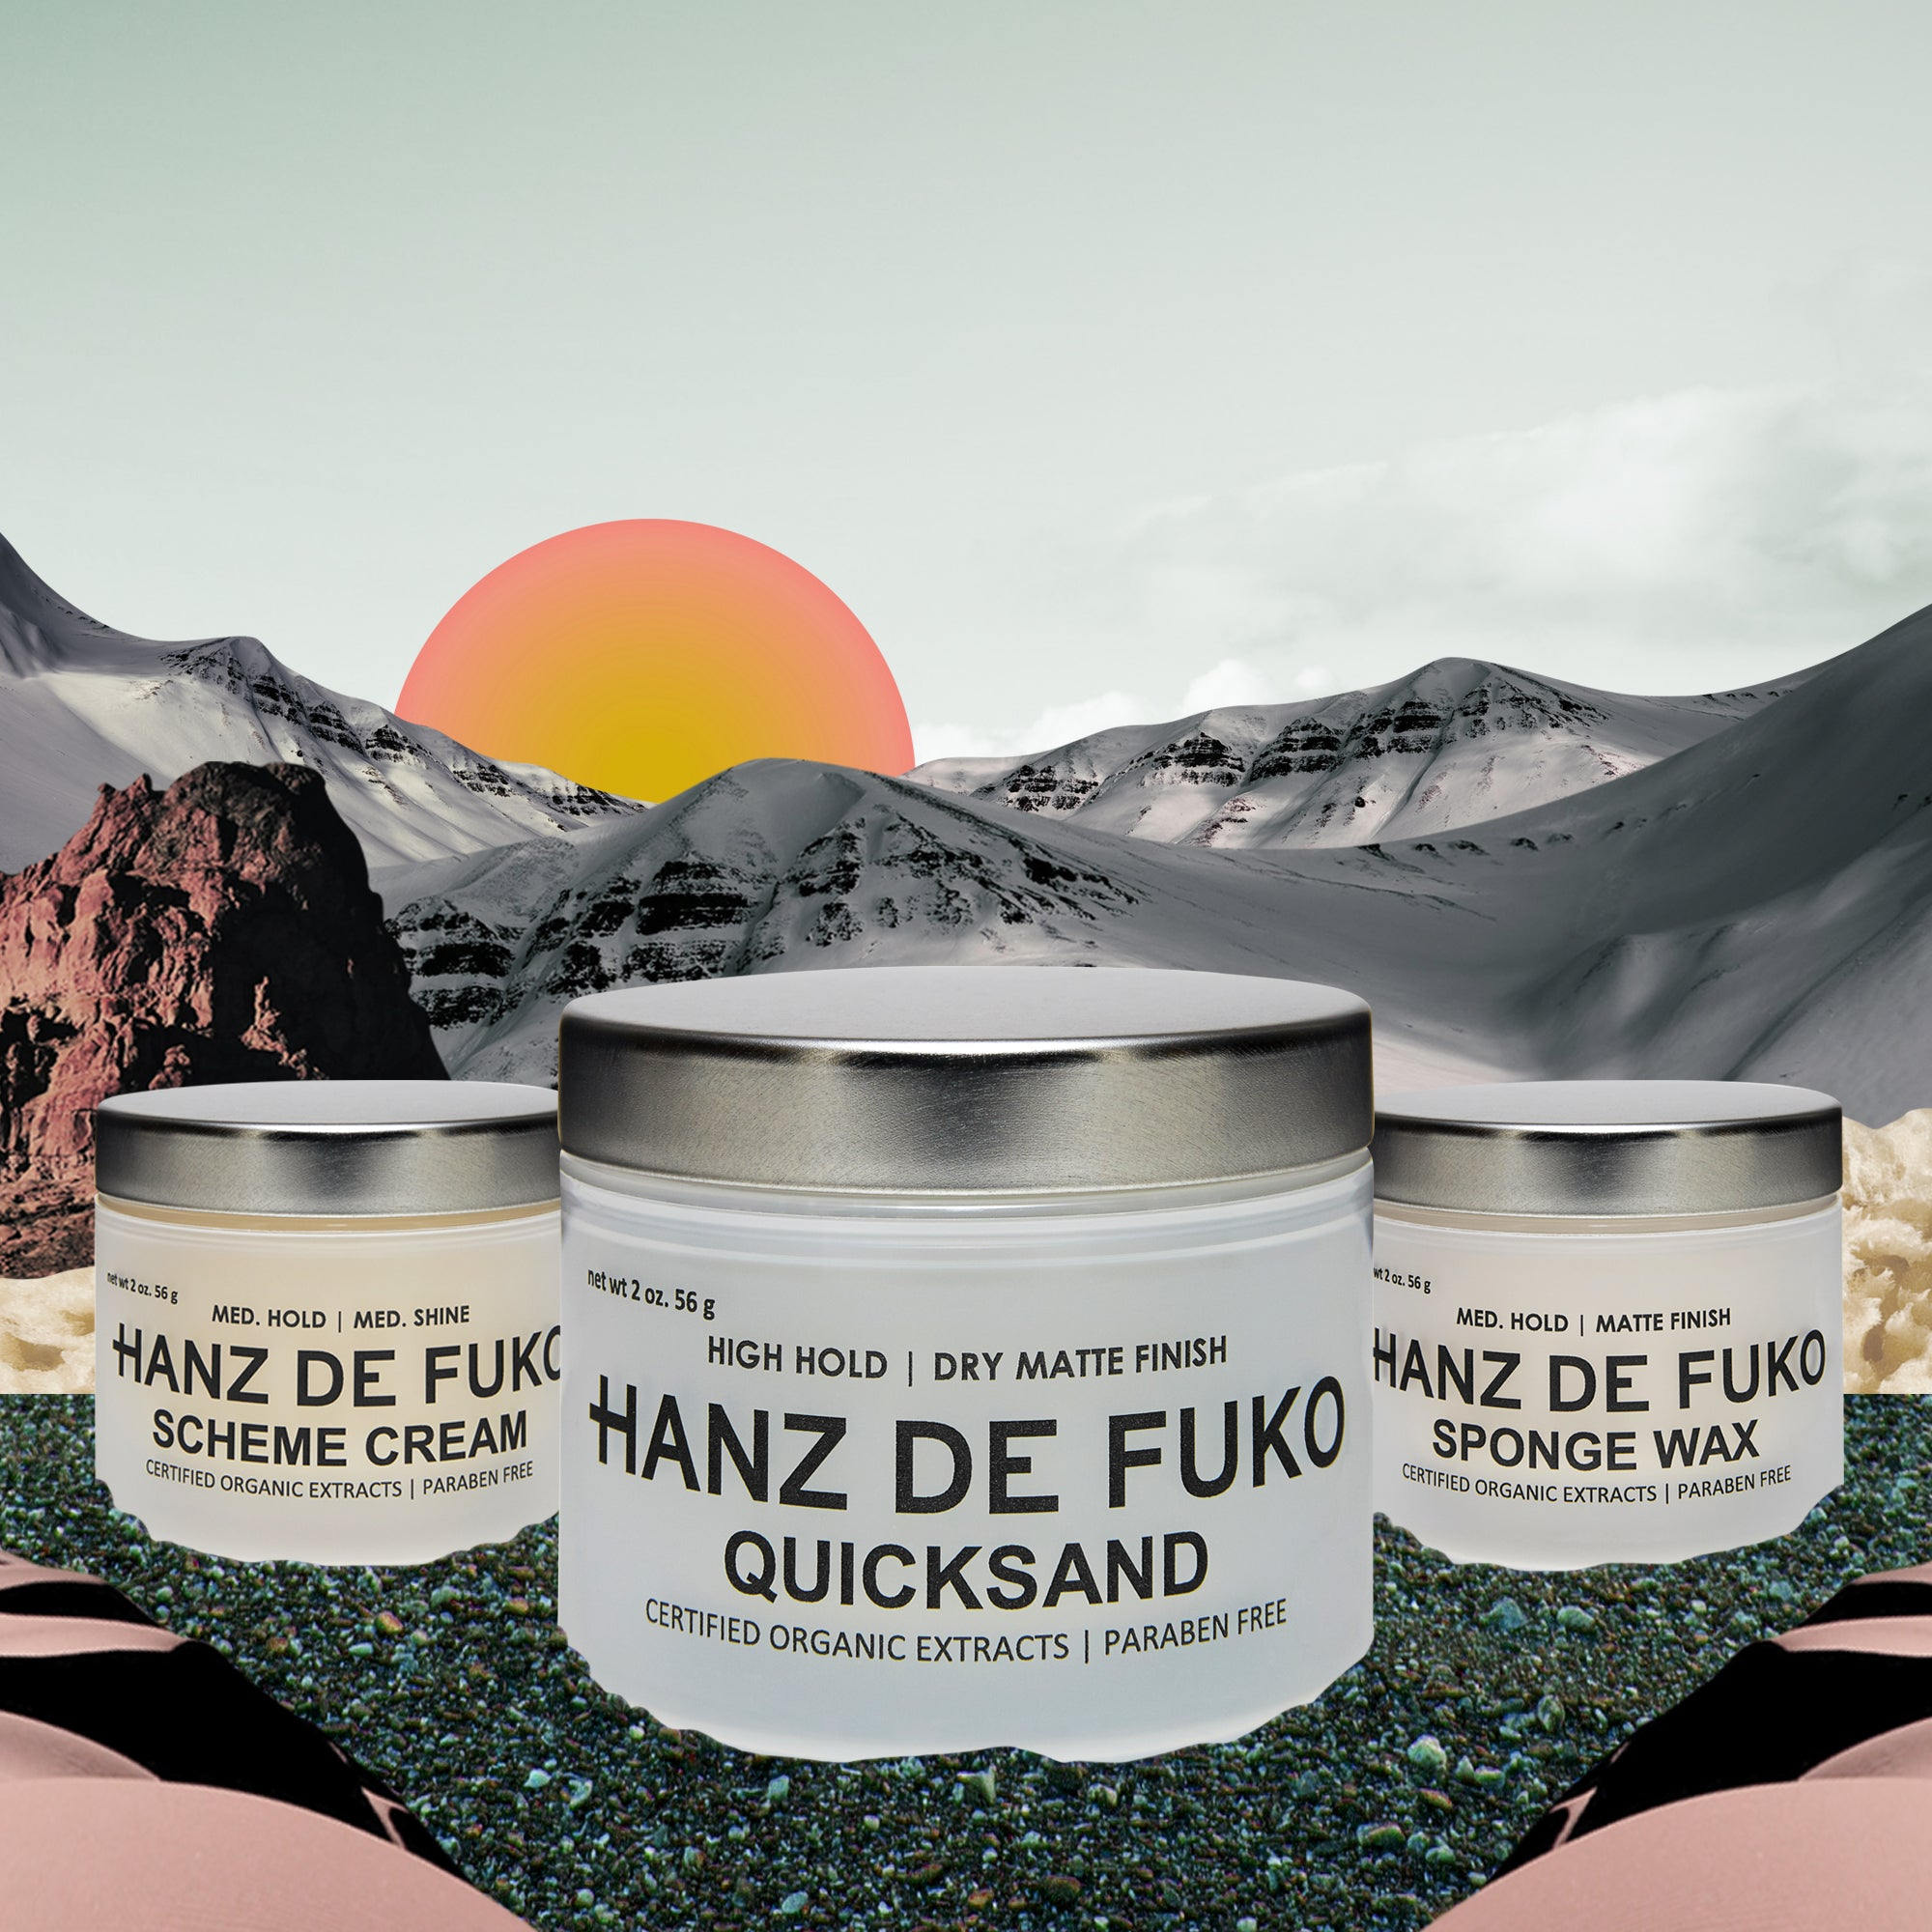 Hanz de Fuko at DeckOut